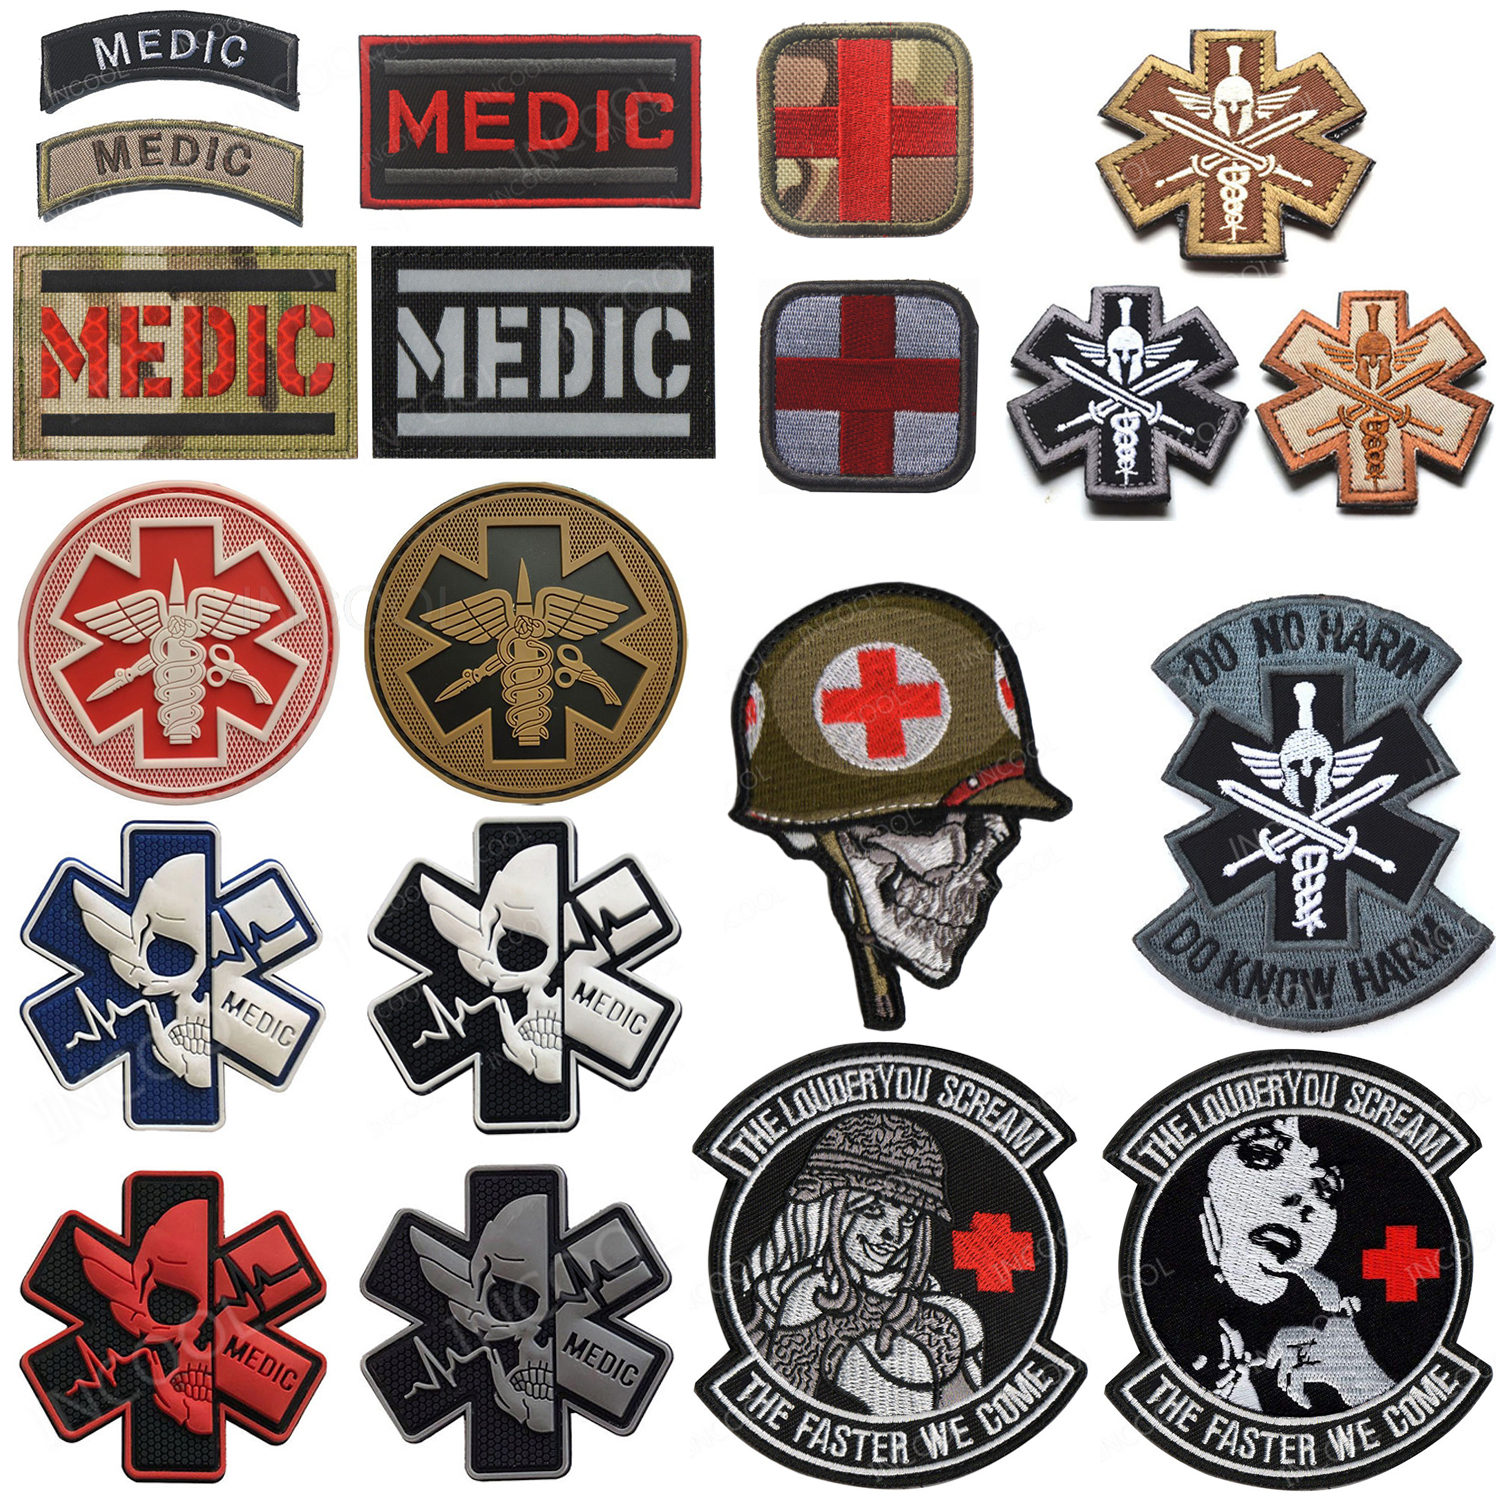 Embroidered Patches MEDIC Skull Tactical Military Patches PARAMEDIC Decorative Reflective Medical Cross Embroidery Badges(China)